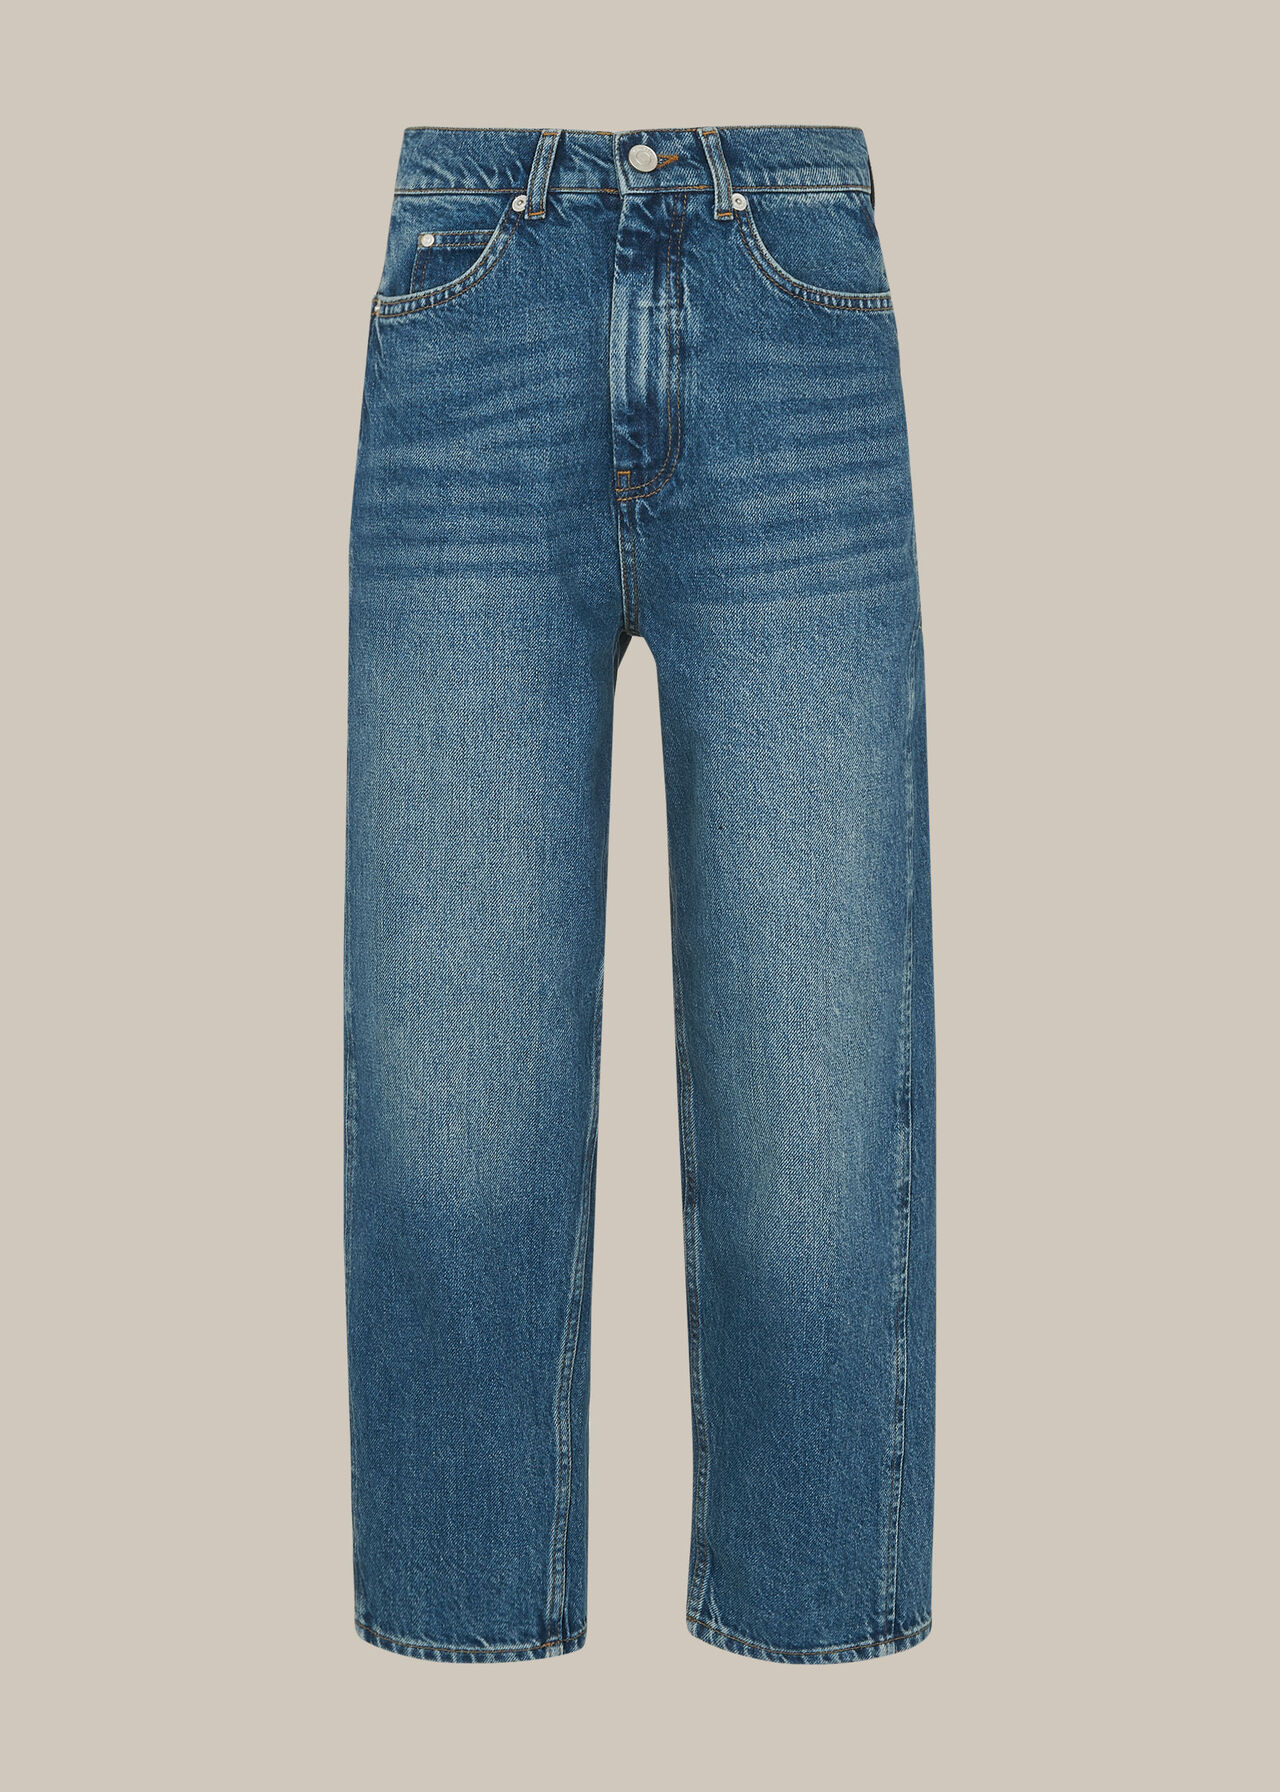 Authentic Washed Barrel Jean